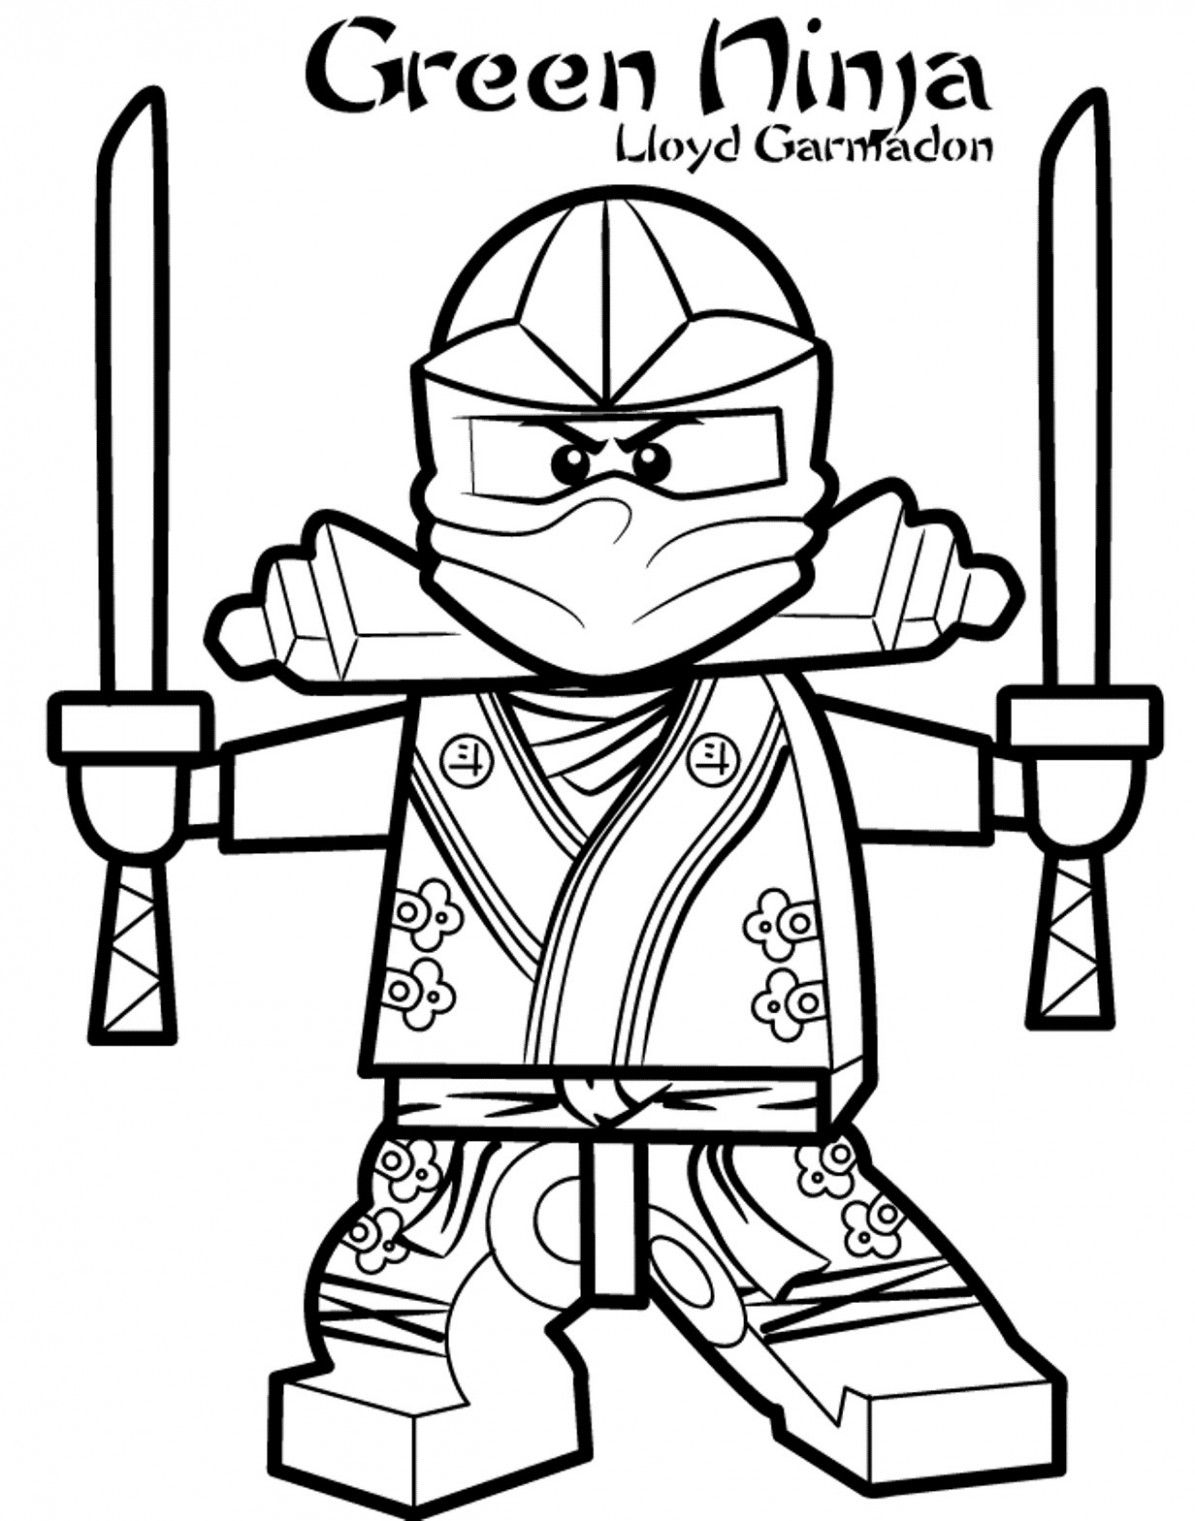 Printable Ninjago Coloring Pages Coloring Book | Thejourneyvisvi.com ...